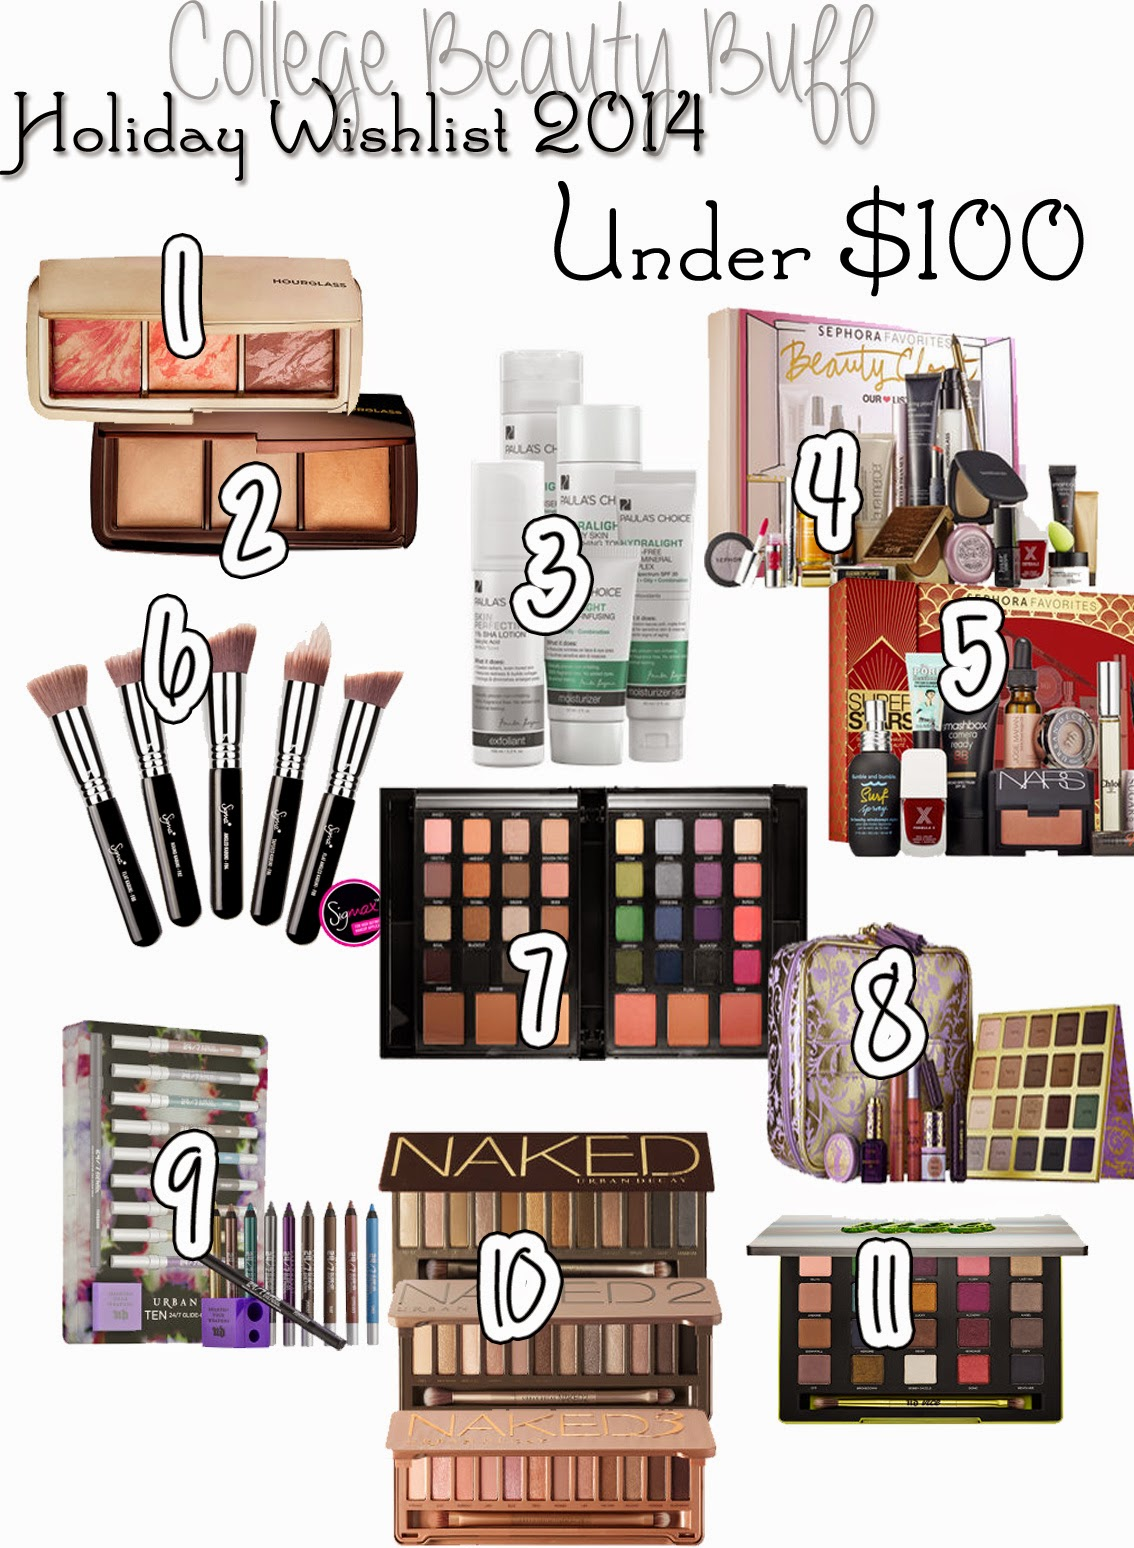 Beauty Buff Holiday Wishlist 2014